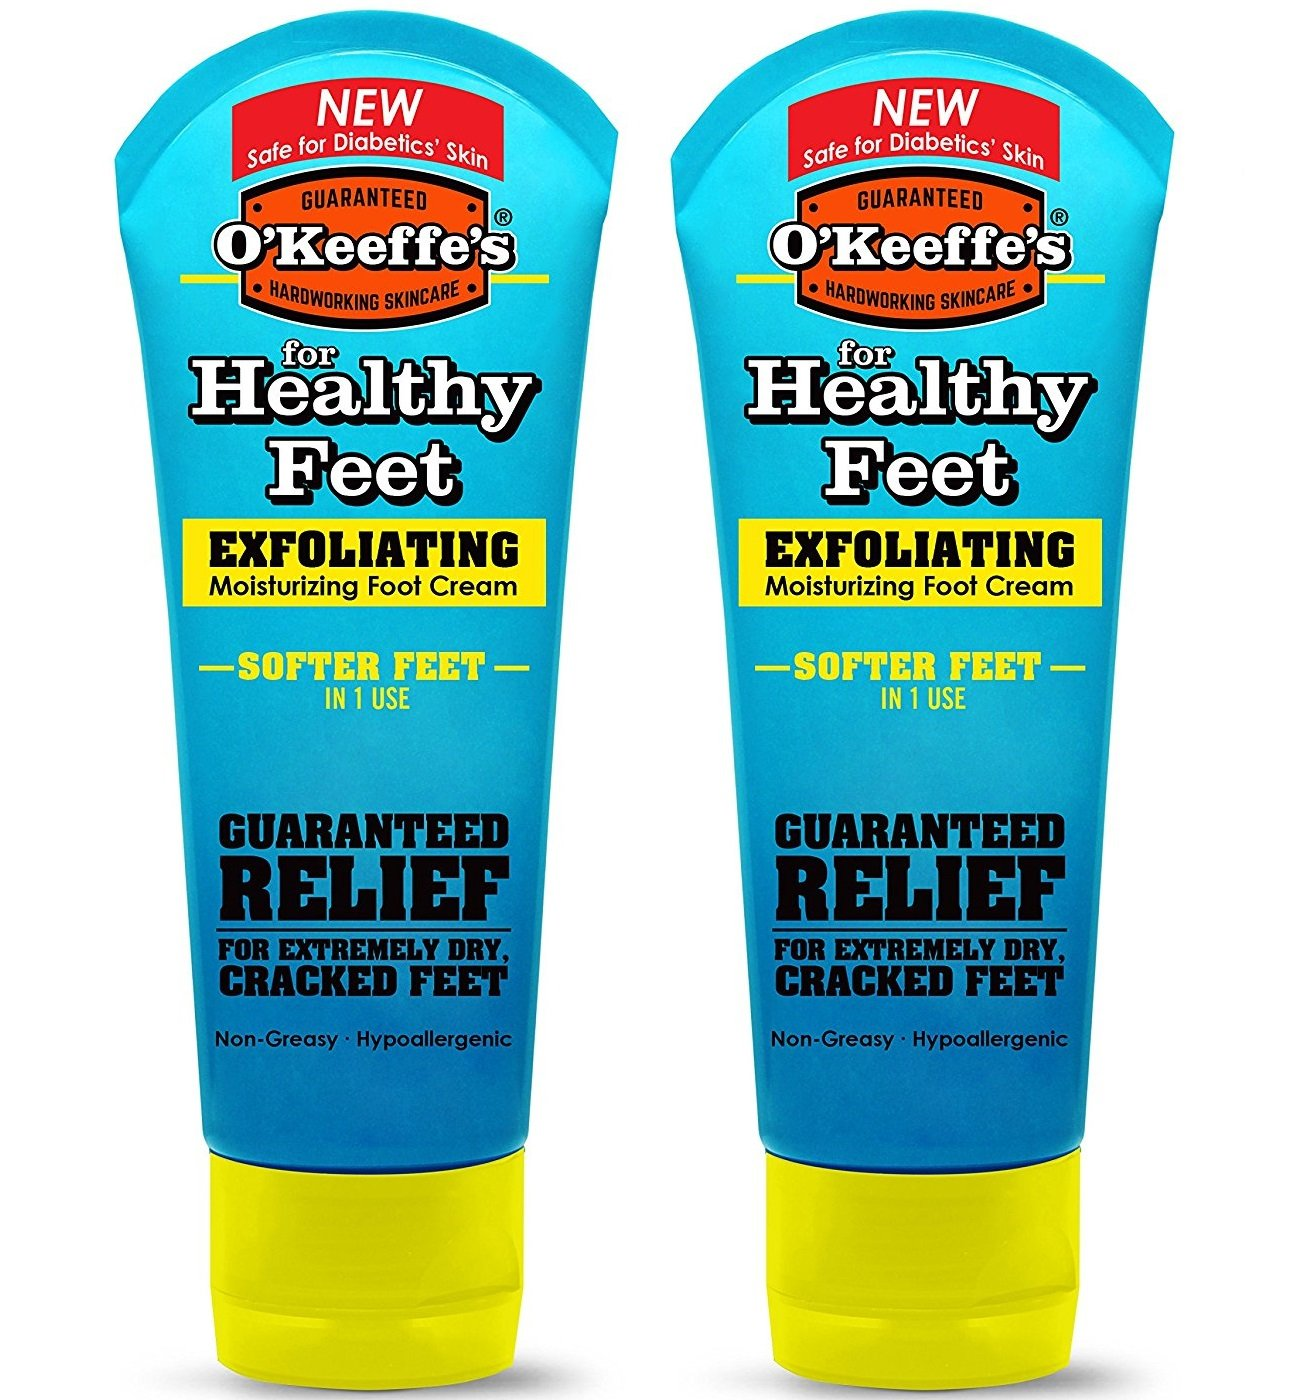 O'Keeffe's Healthy Feet, Exfoliating Foot Cream, 3 oz. Tube - 2 Pack by O'Keeffe's